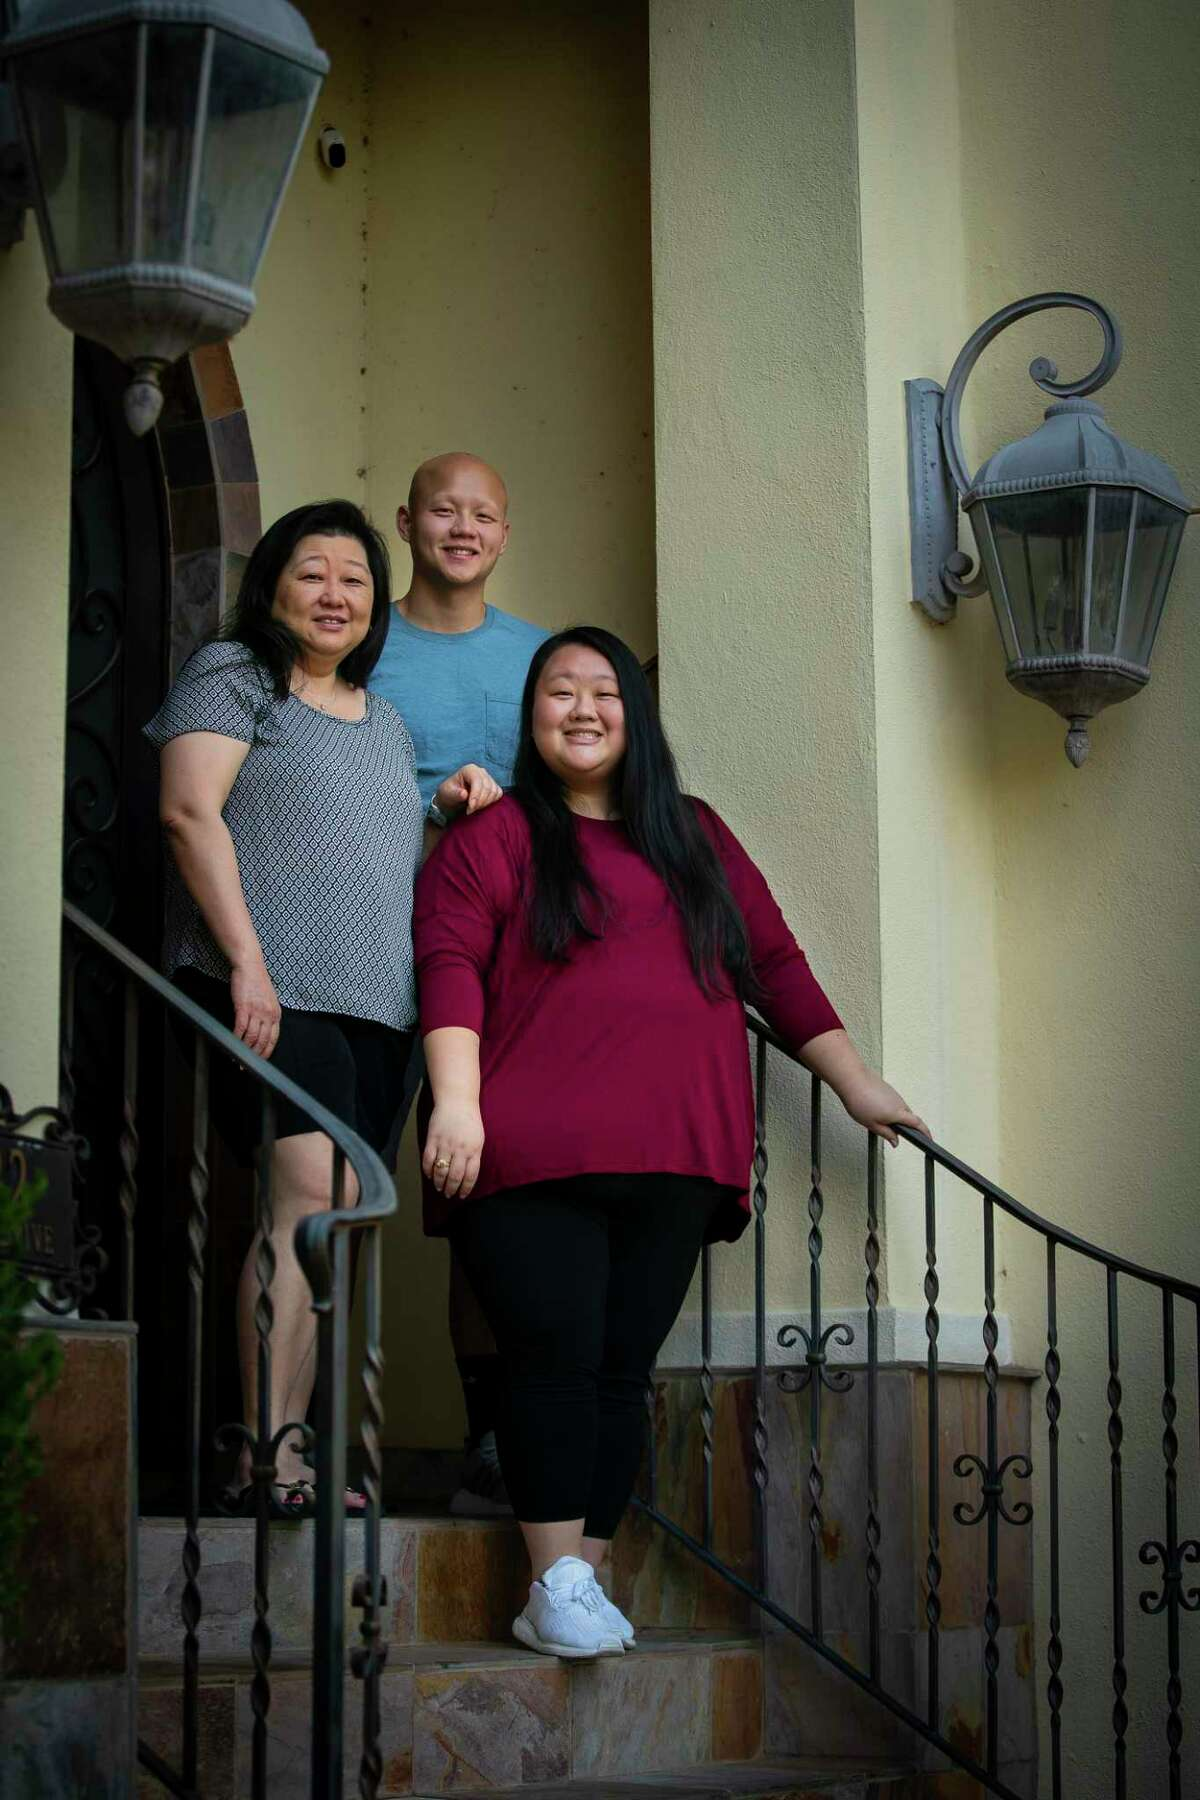 Ashlee Phan, photographed with her mother, Margaret Lynn, and brother Nick Phan, was working her job as a surgical nurse when she began running a fever. At only 25 years-old, she did not think it was COVID-19. Days later, her mom found her unconscious and near death. Ashlee, who is now negative, spent time in the ICU and has since been recovering at her mother's home. Photographed on Thursday, Aug. 13, 2020, in Houston.